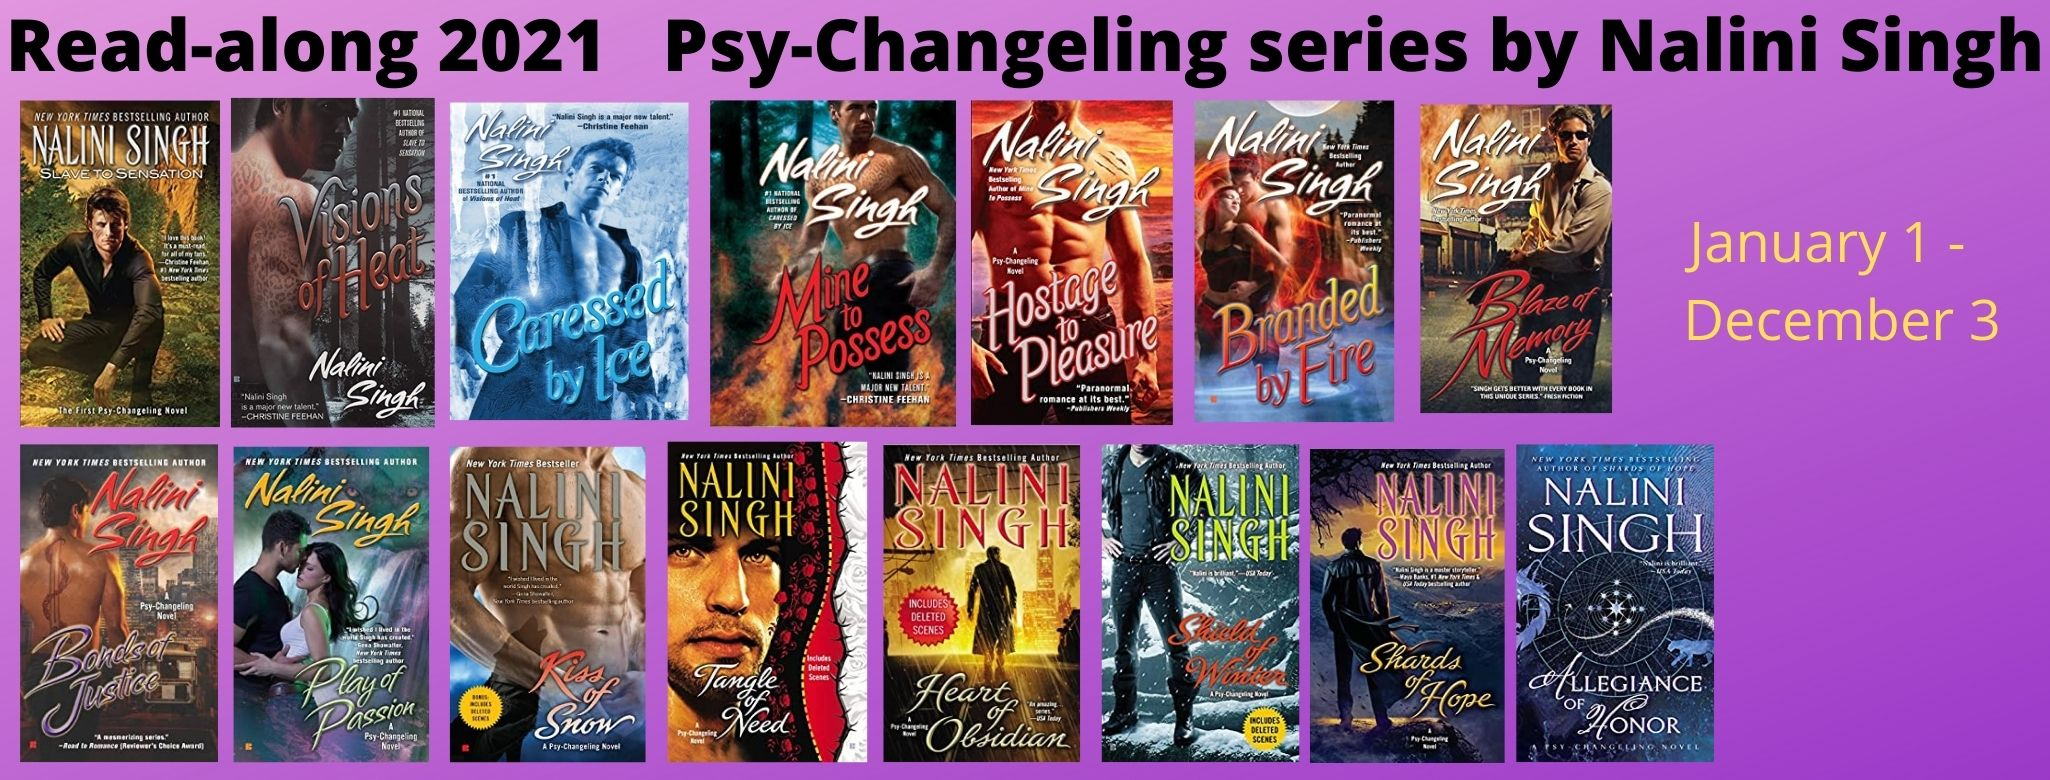 Audio codes for all 15 books in the Psy-Changeling series by Nalini Singh (open Intl)